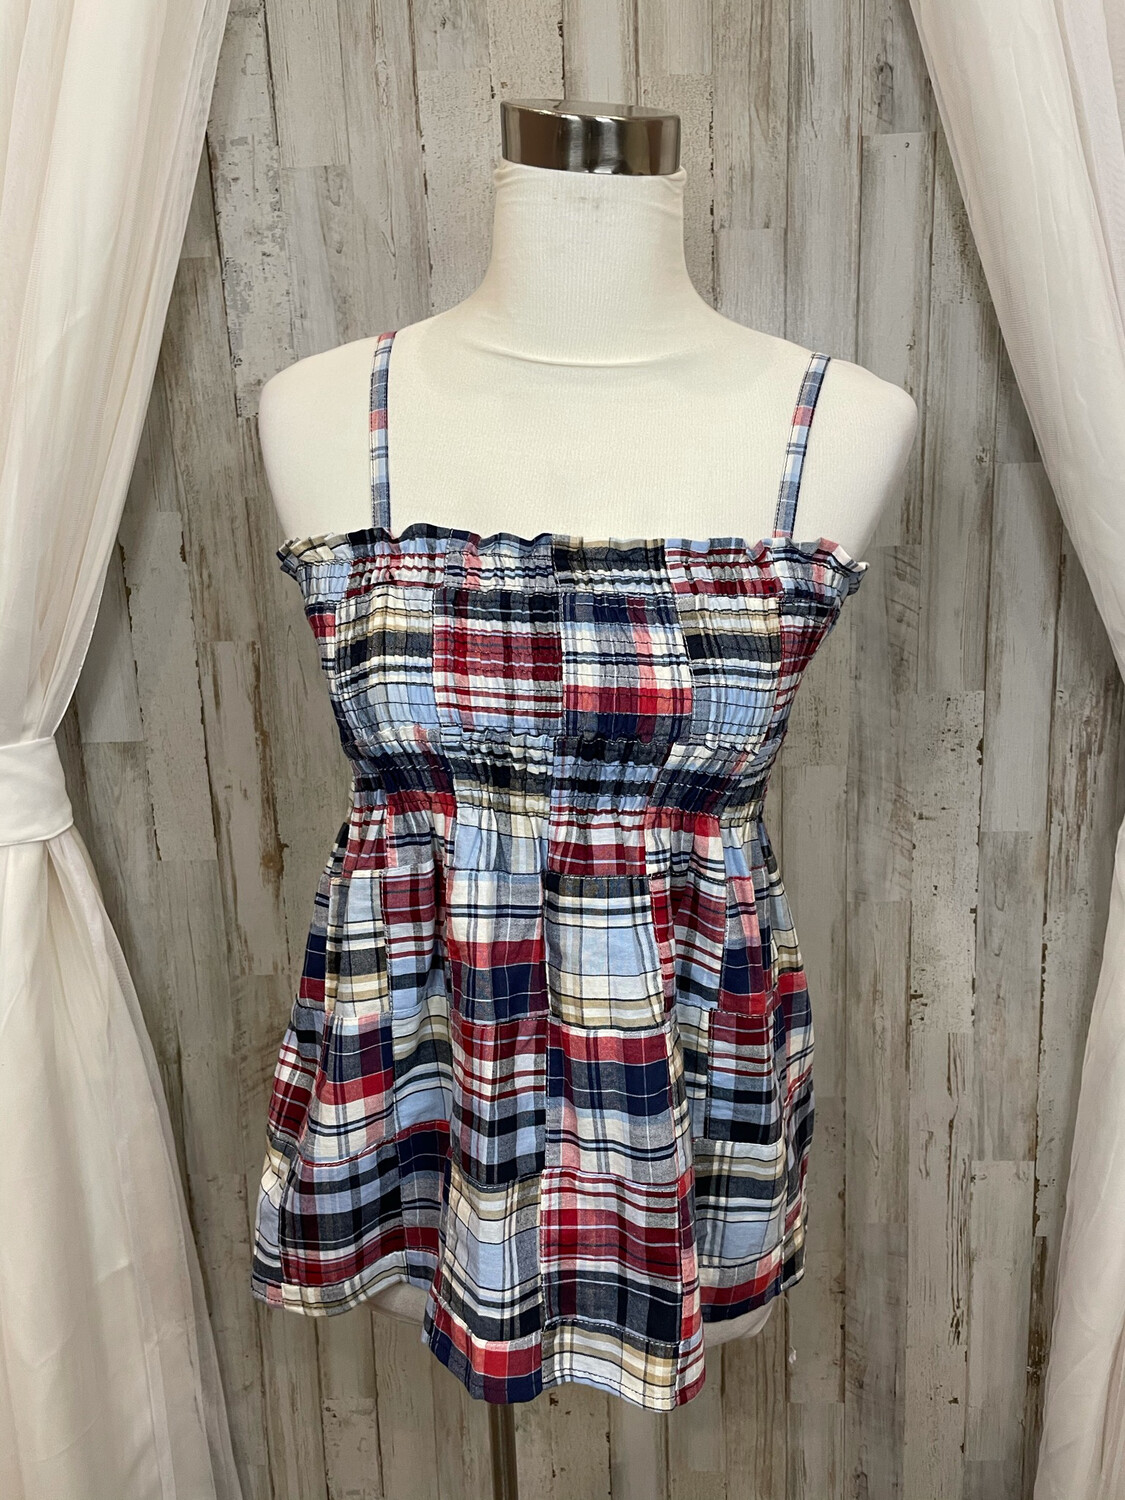 LOFT Red White & Blue Plaid Smocked Top - M